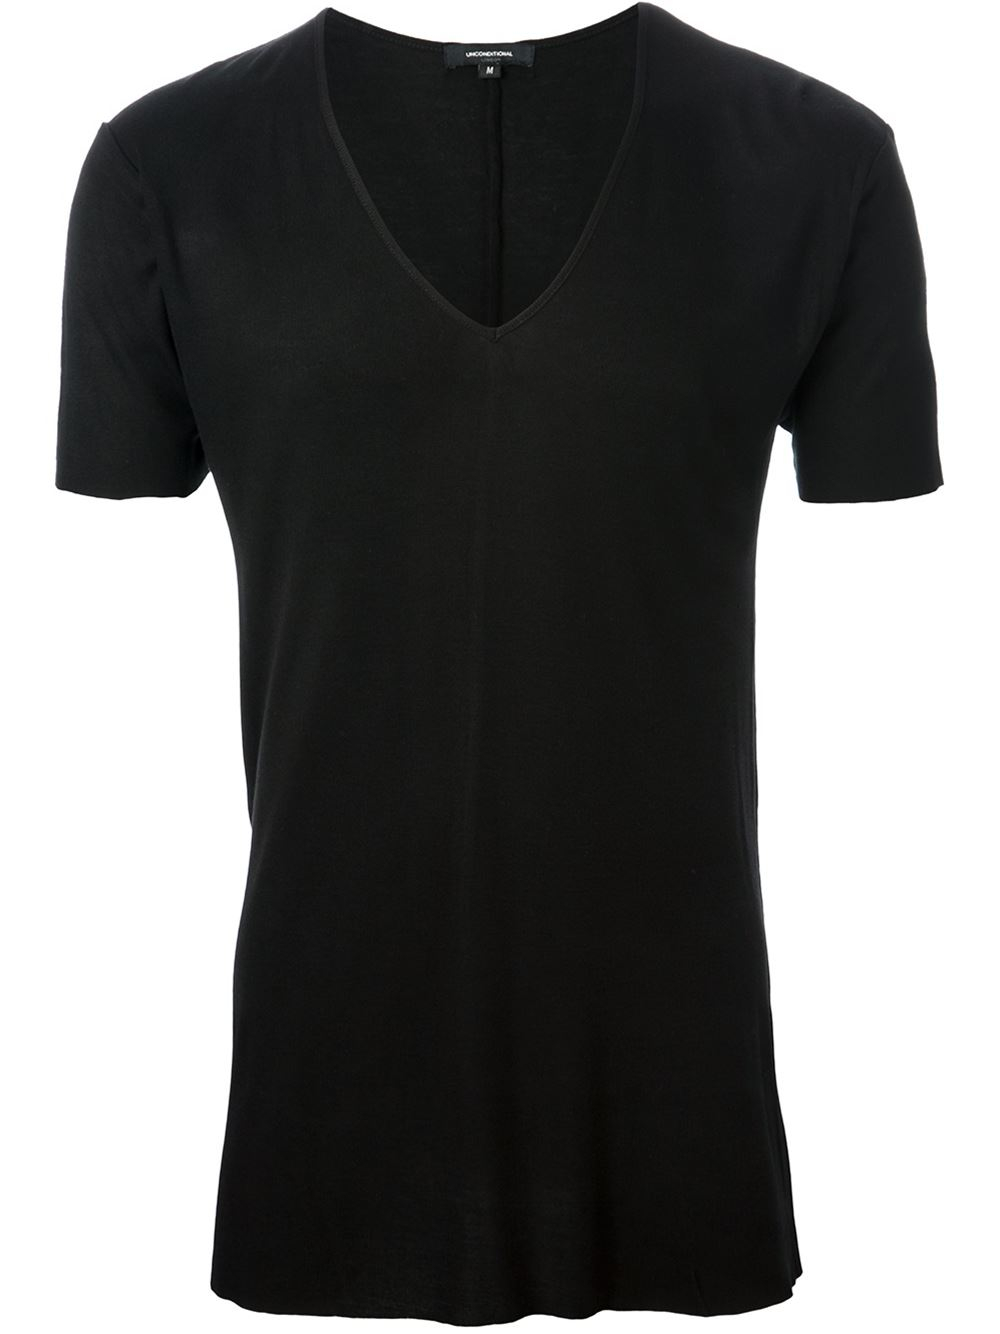 Black t shirt v shape - Black T Shirt V Shape Gallery